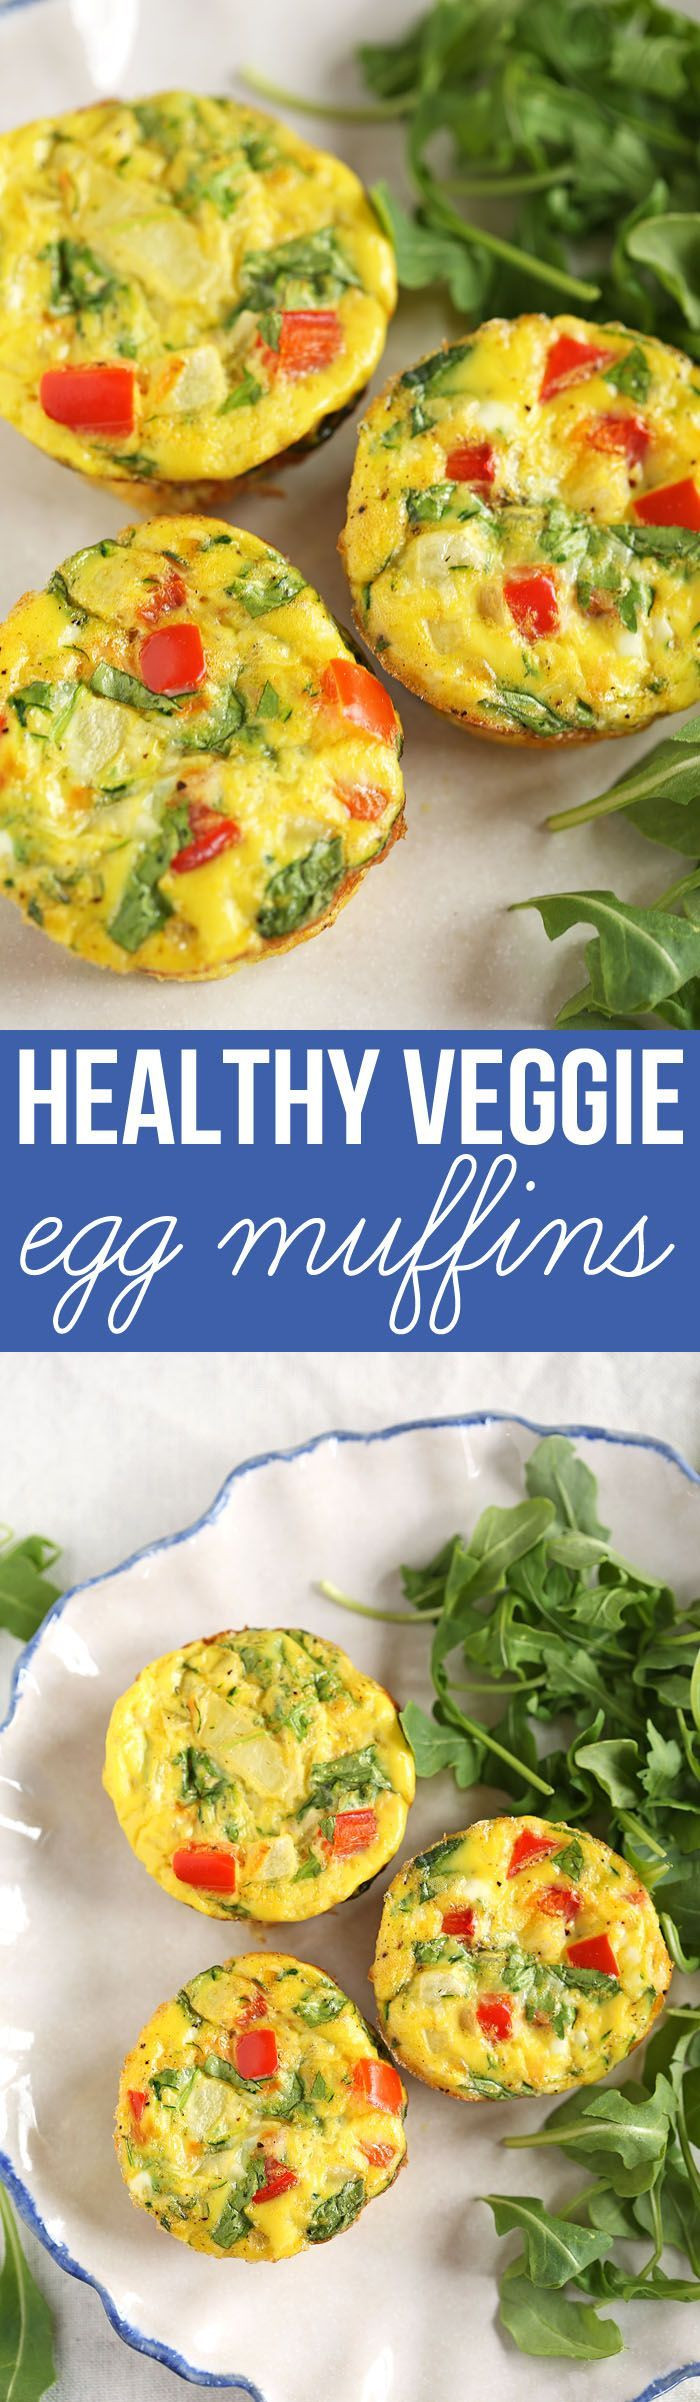 Are Eggs A Healthy Breakfast  100 Egg Recipes on Pinterest